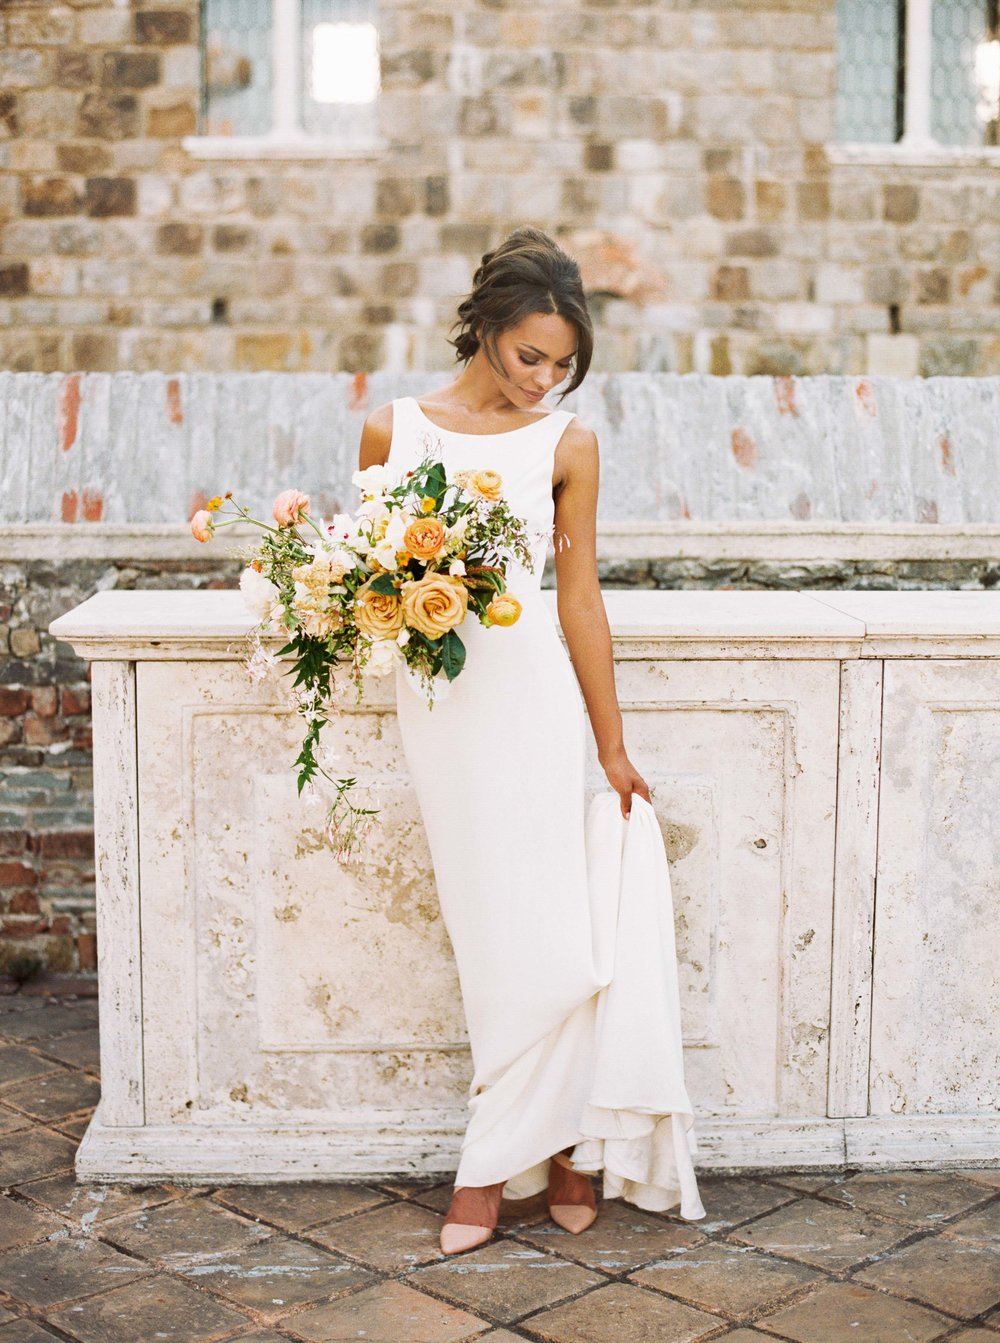 038napa_wedding_photographer_and_videographer_destination_and_elopement_photography.jpg